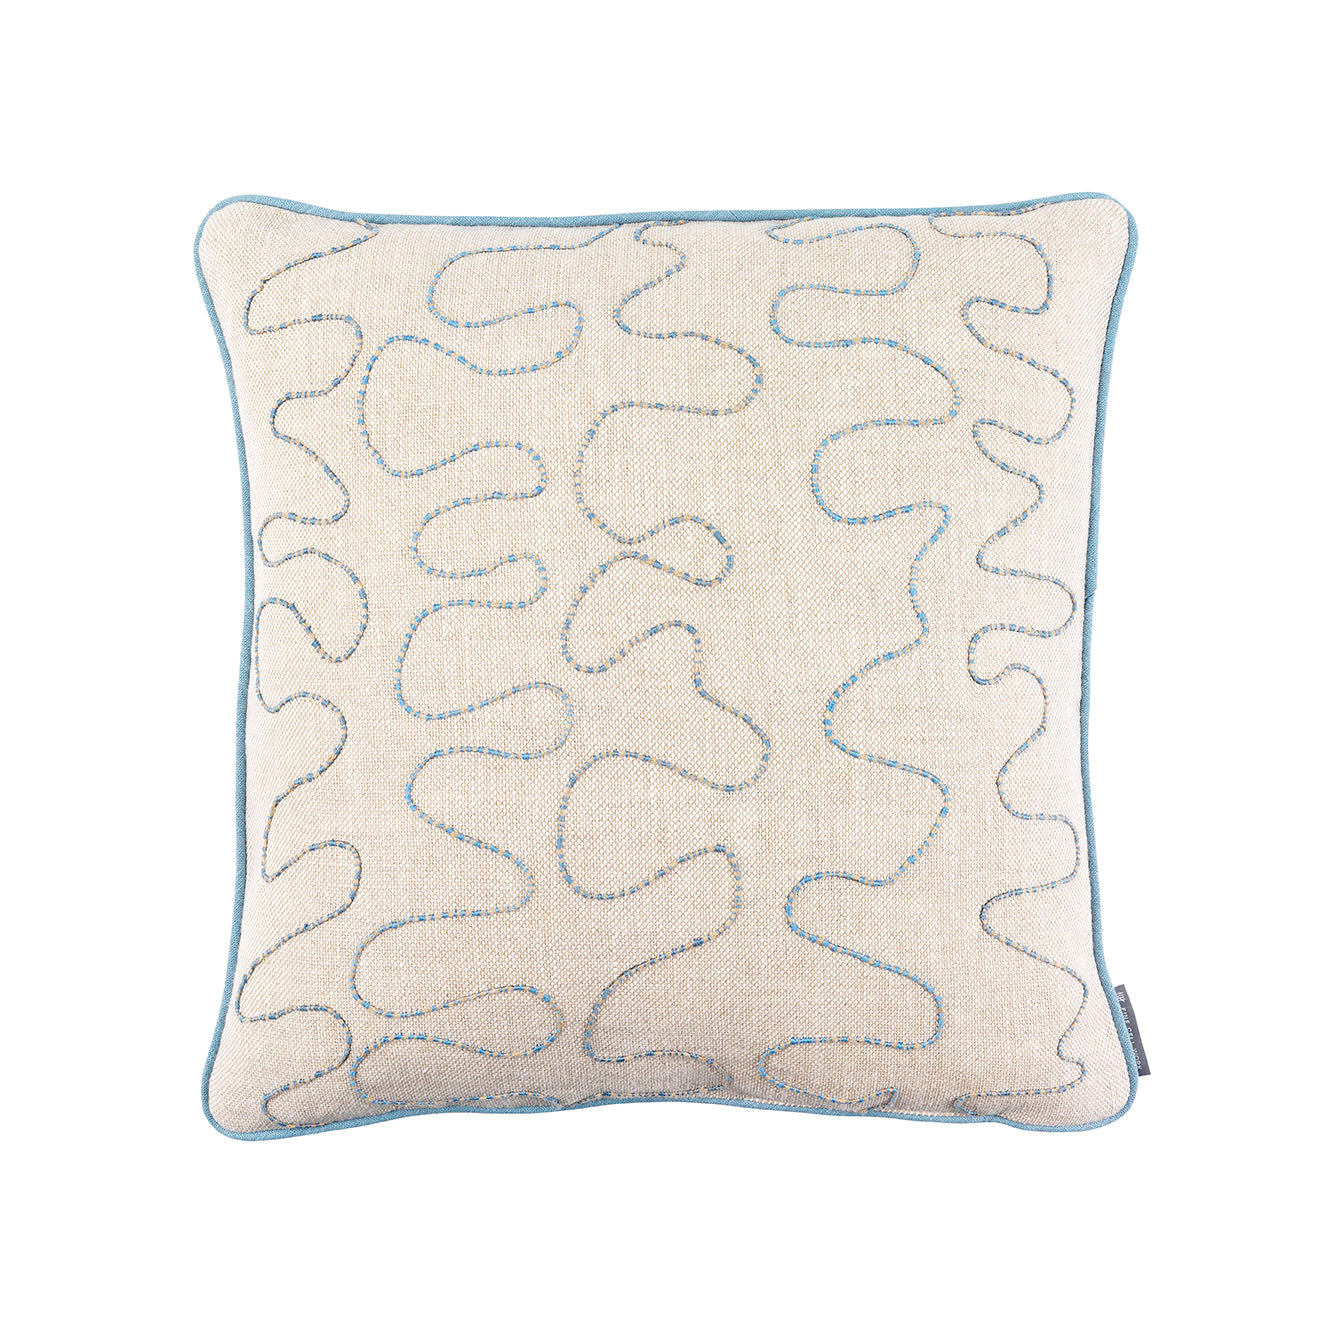 Melissa Wyndham Robert Stephenson Kit Kemp for Fine Cell Work Vermicelli Hand Embroidered Cushion Blue